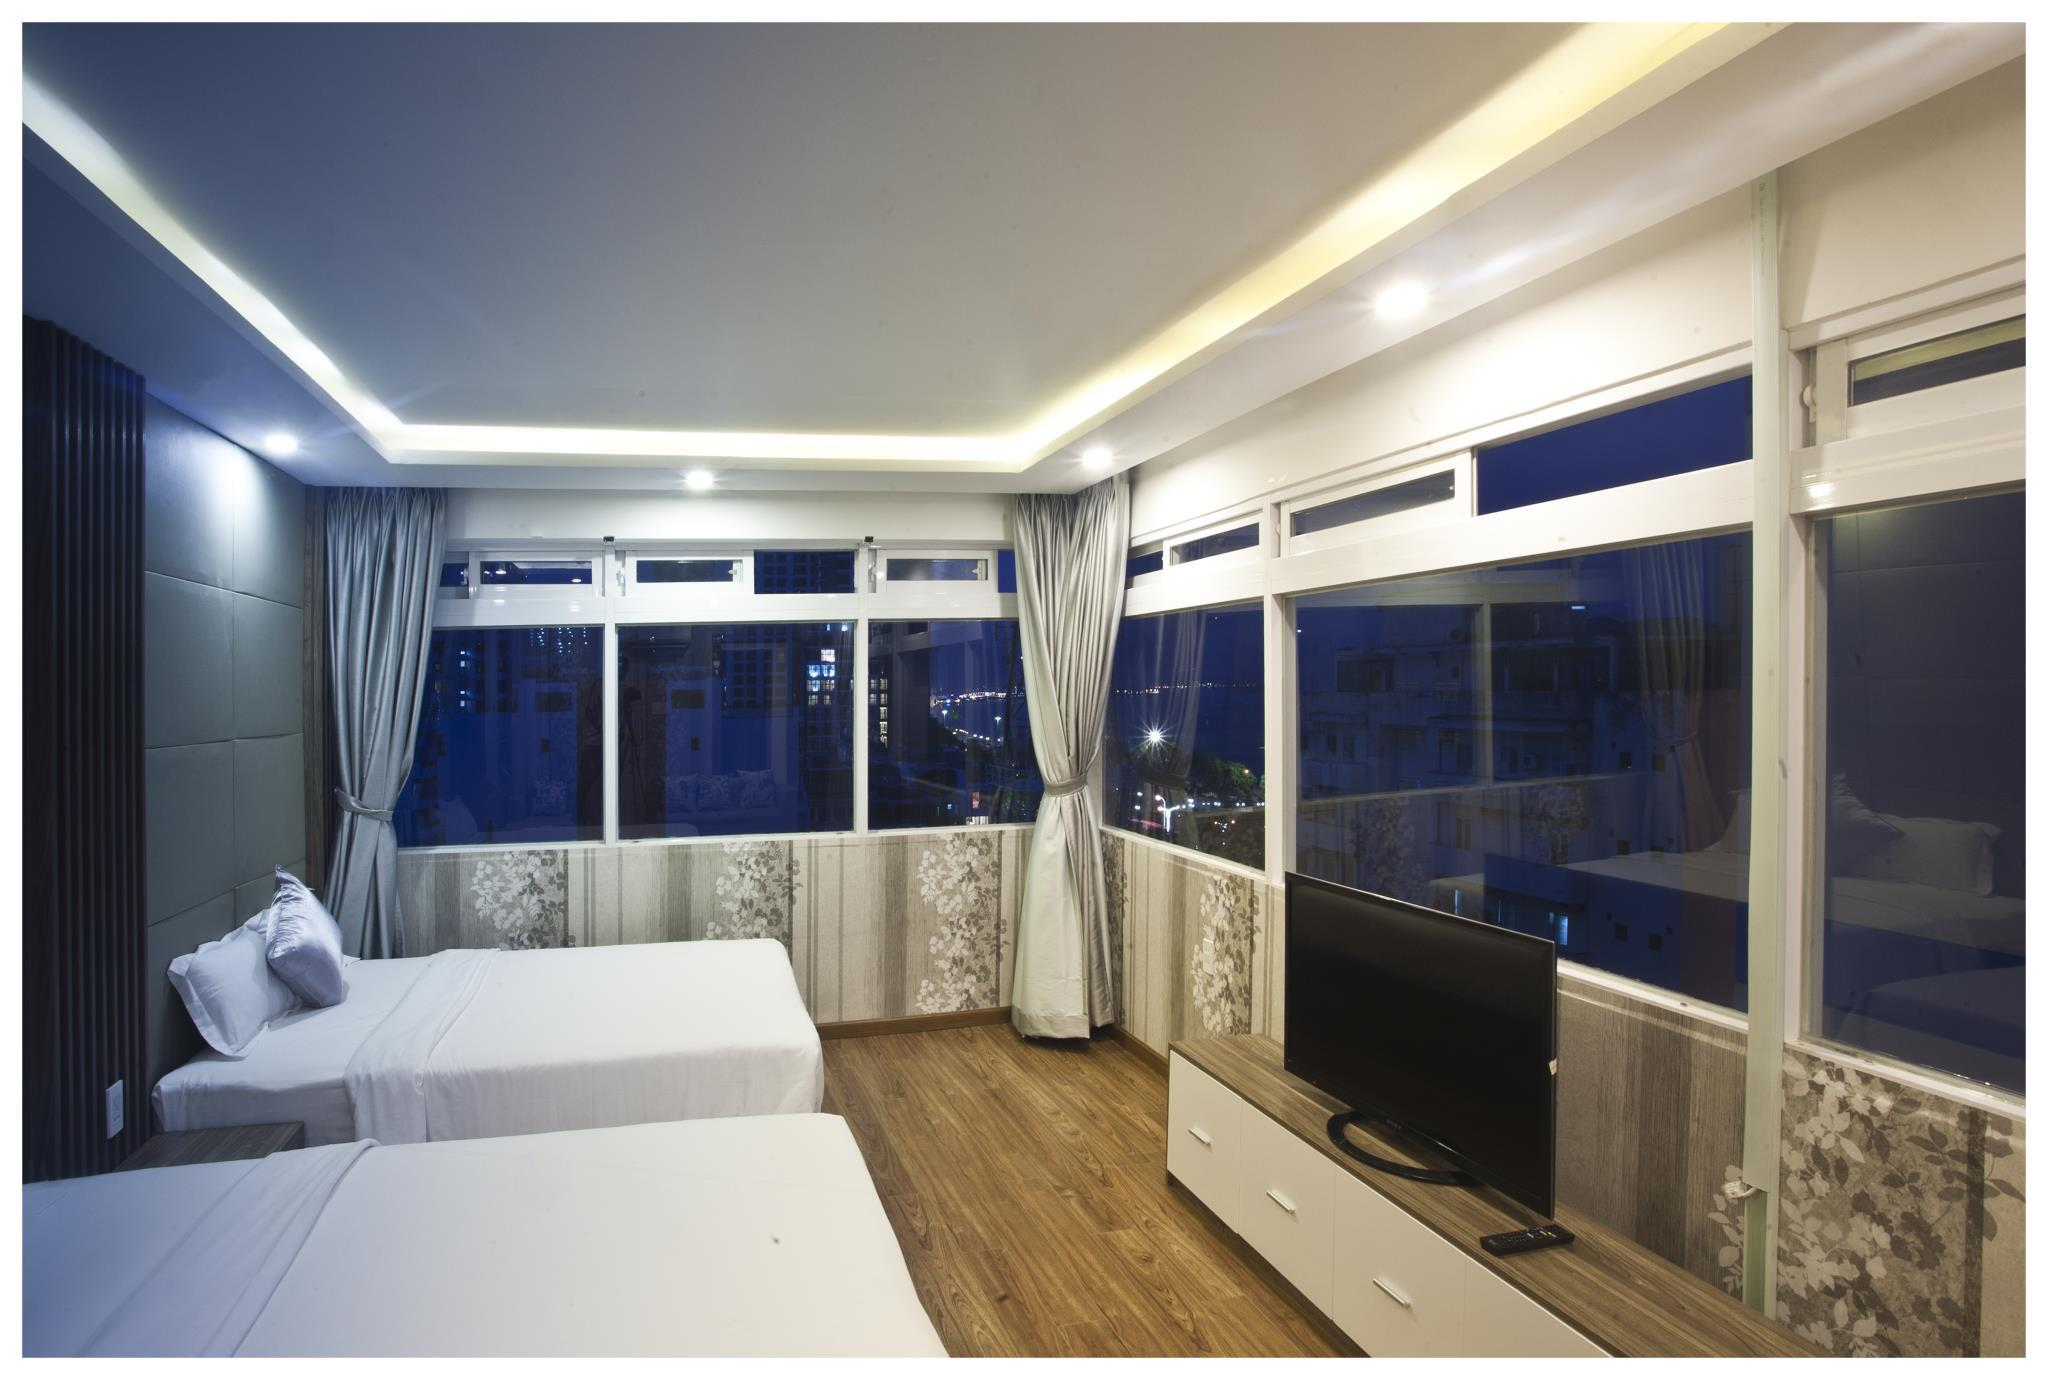 Apartman - 4 Odraslih (Apartment - 4 adults)